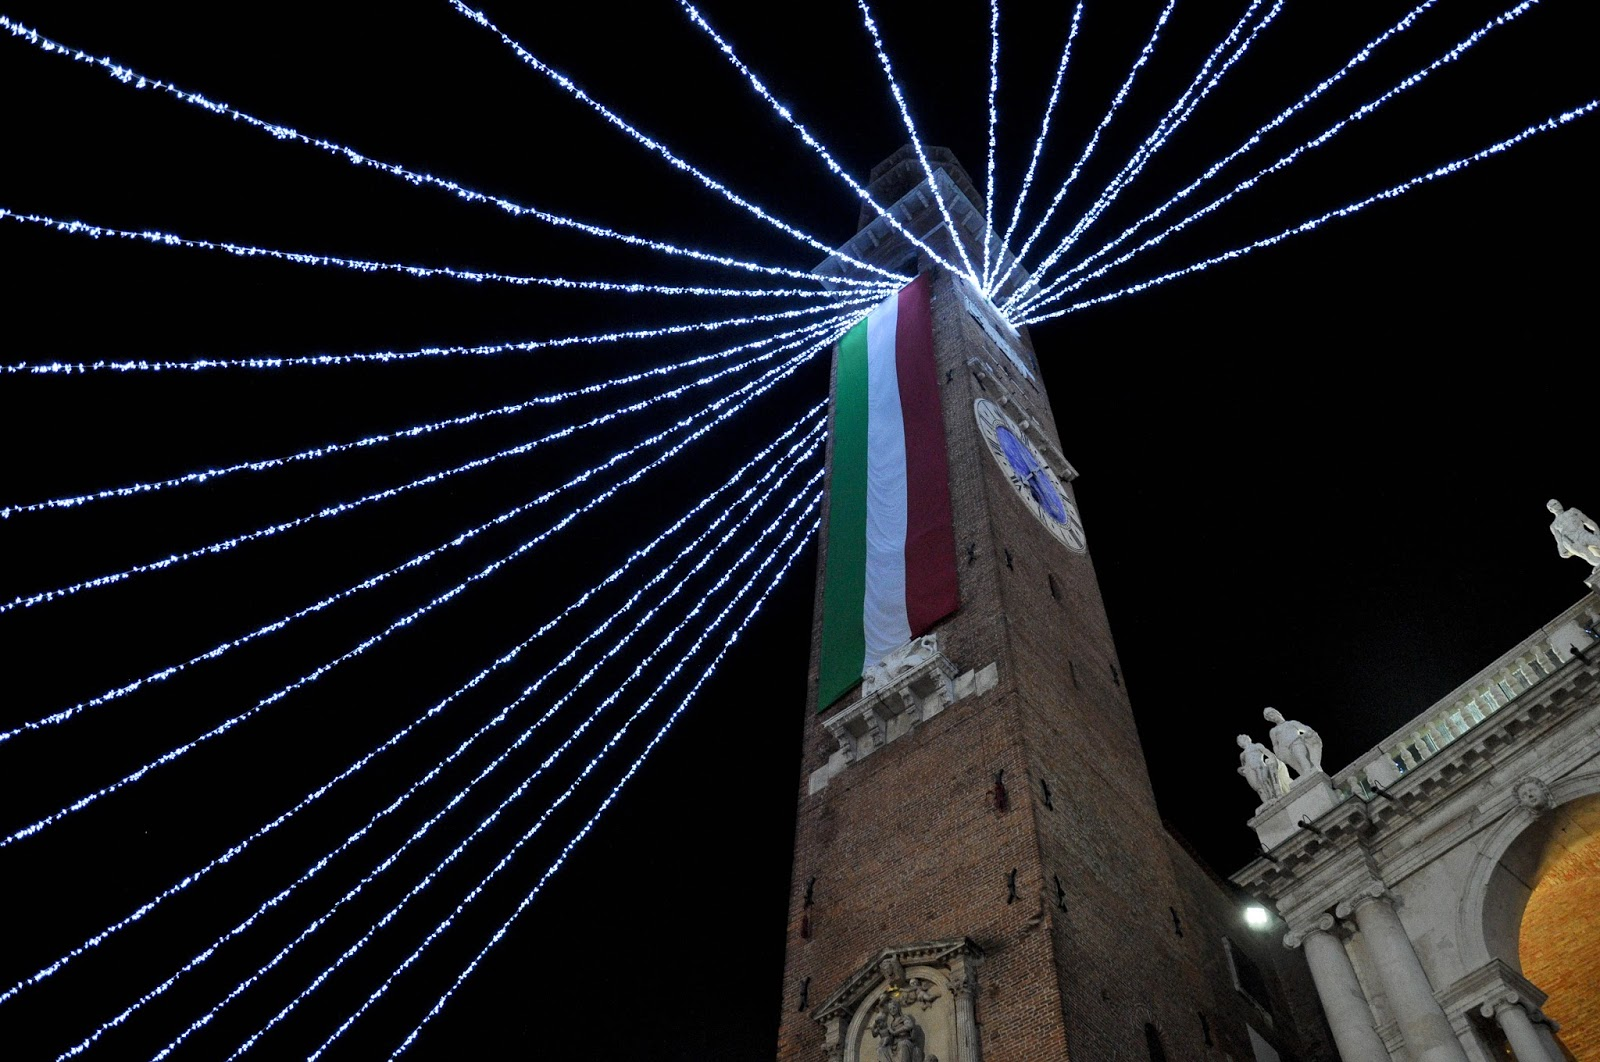 The Christmas decorations at Piazza dei Signori, Vicenza, Veneto, Italy